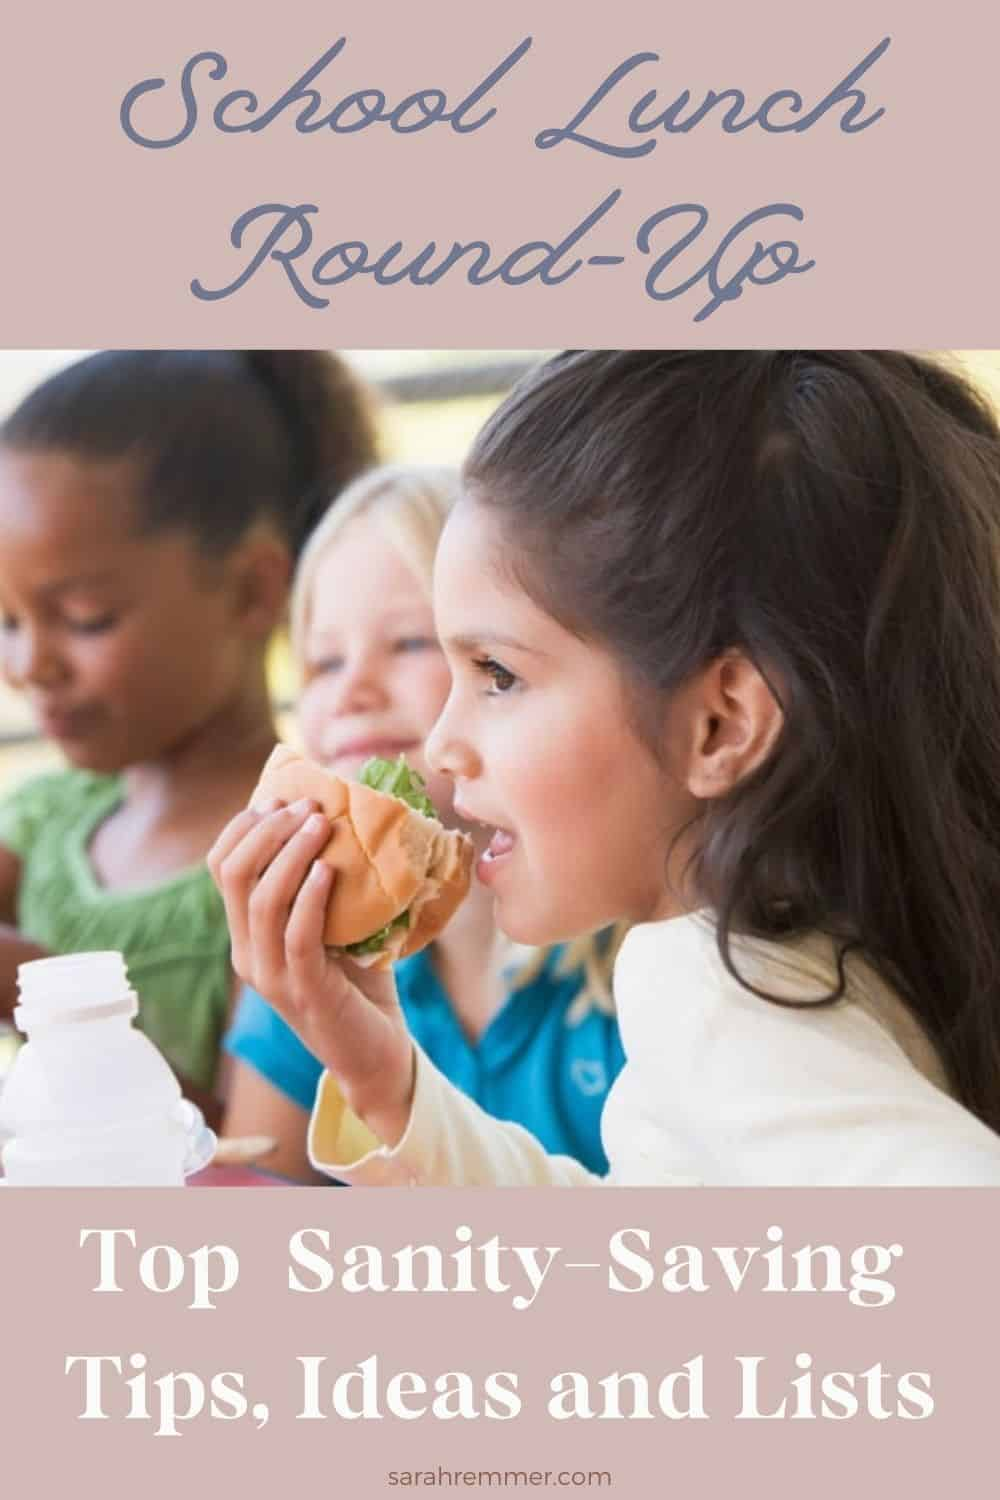 Back-to-school time is exciting and nerve-wracking all at the same time--especially for those of us who are rookies! As a dietitian and mom of three, here are my top sanity-saving tips for making school lunches a breeze!